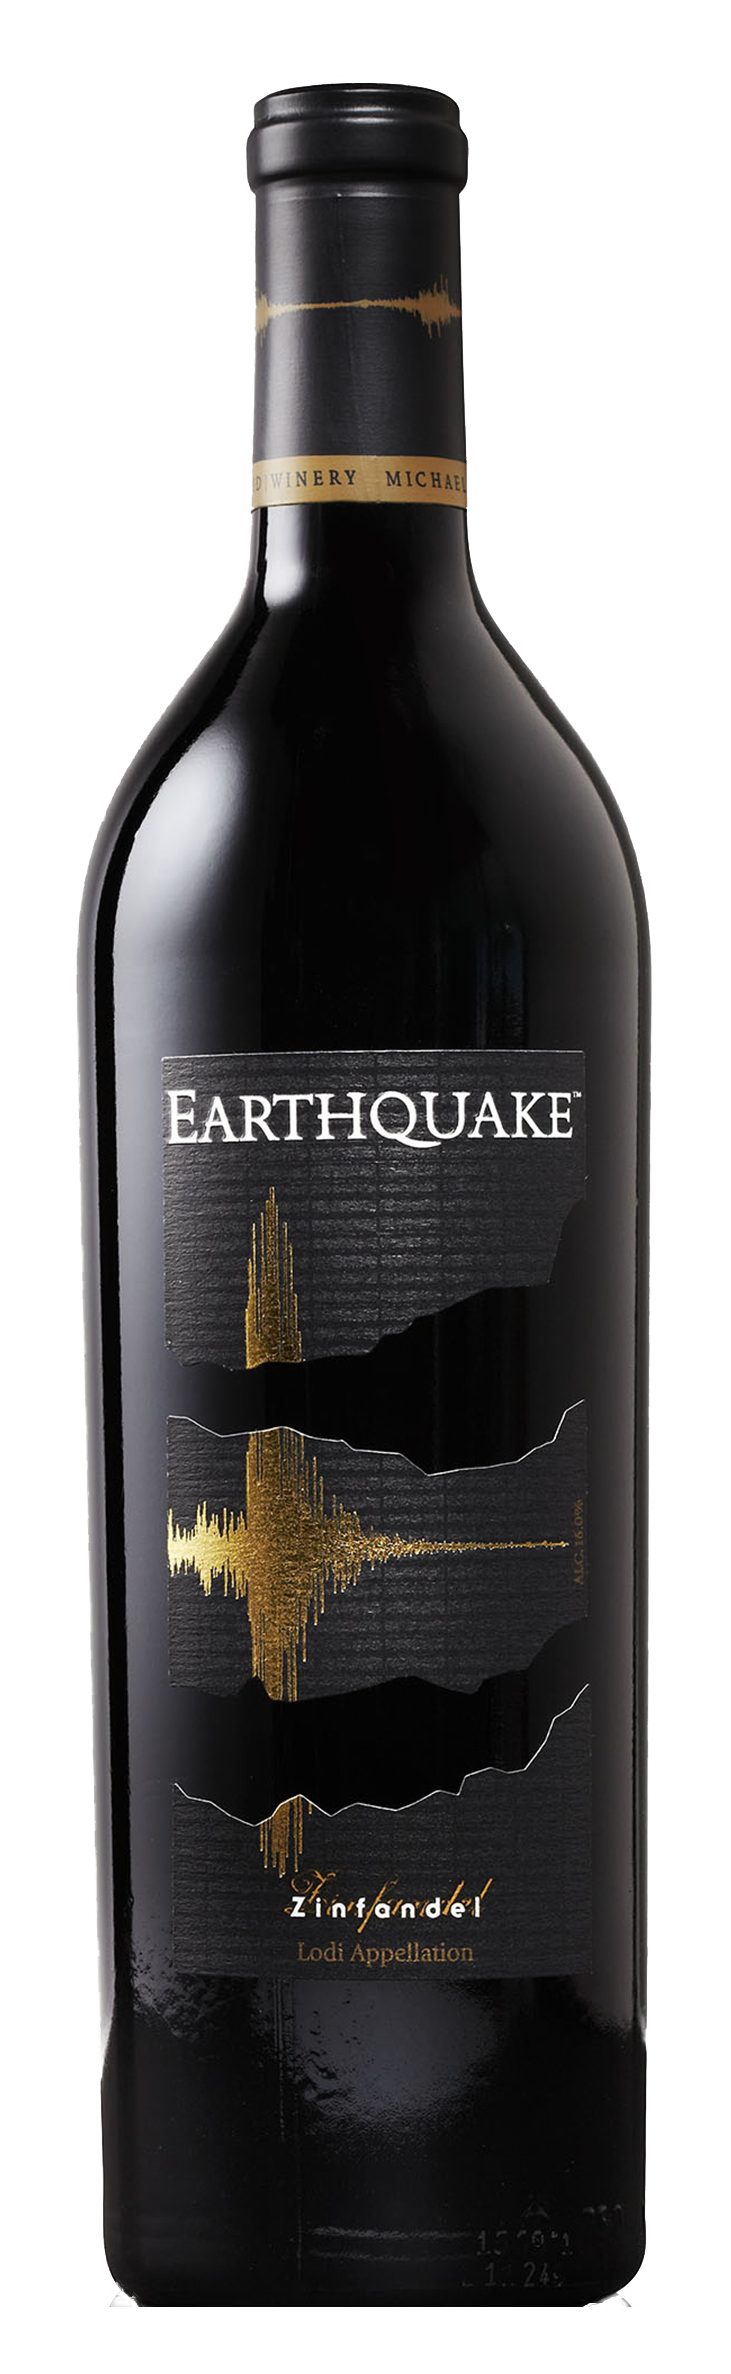 Earthquake Zin